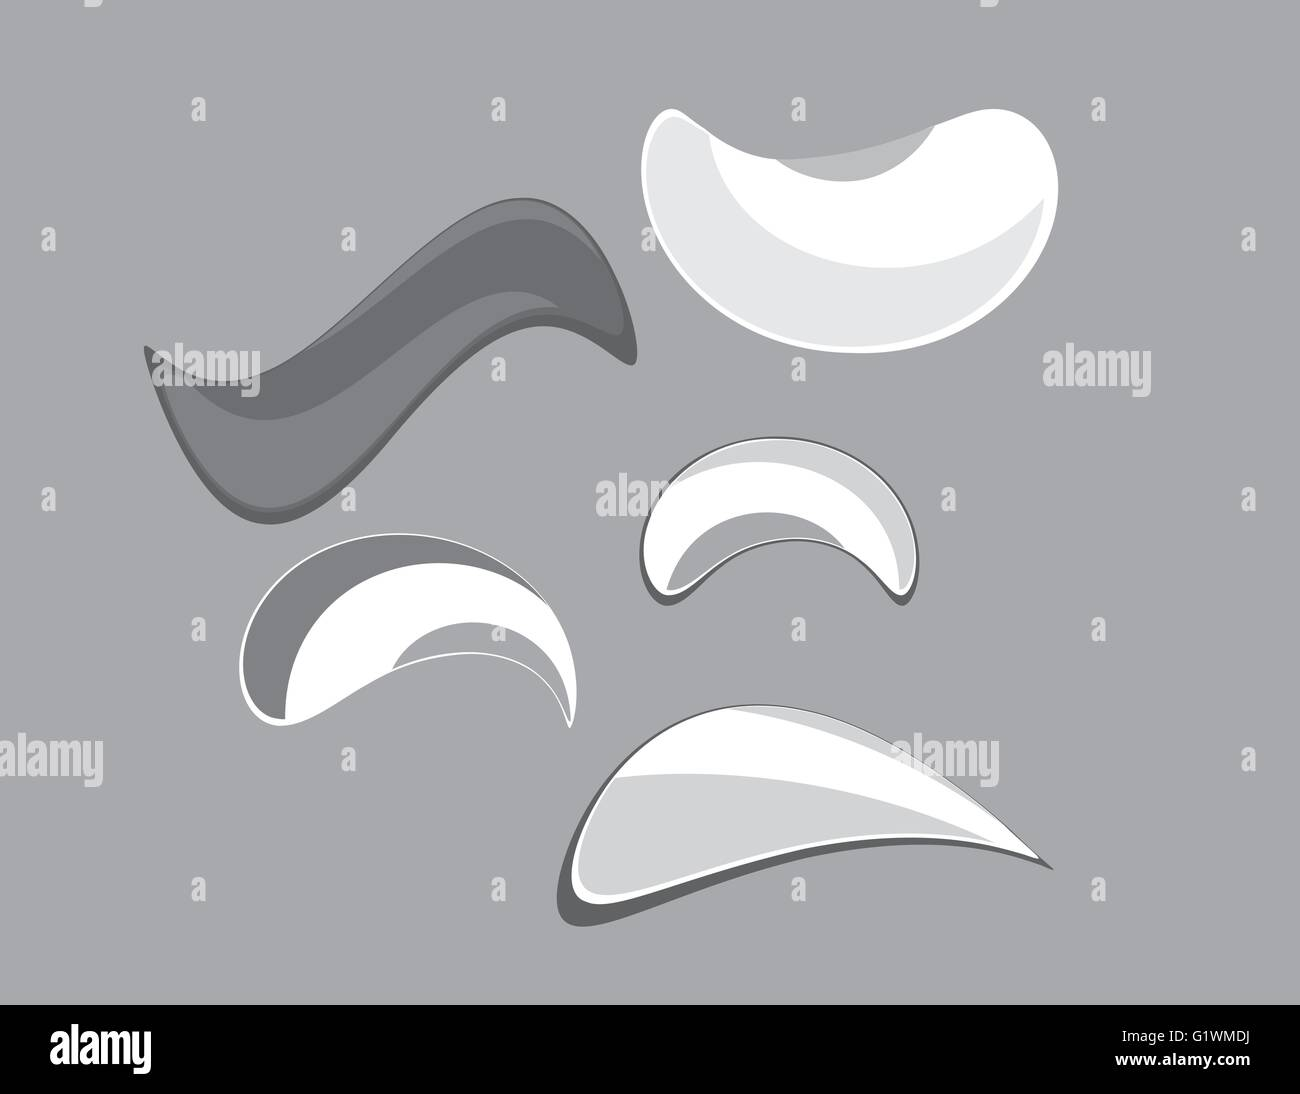 Logo abstract objects set - Stock Image